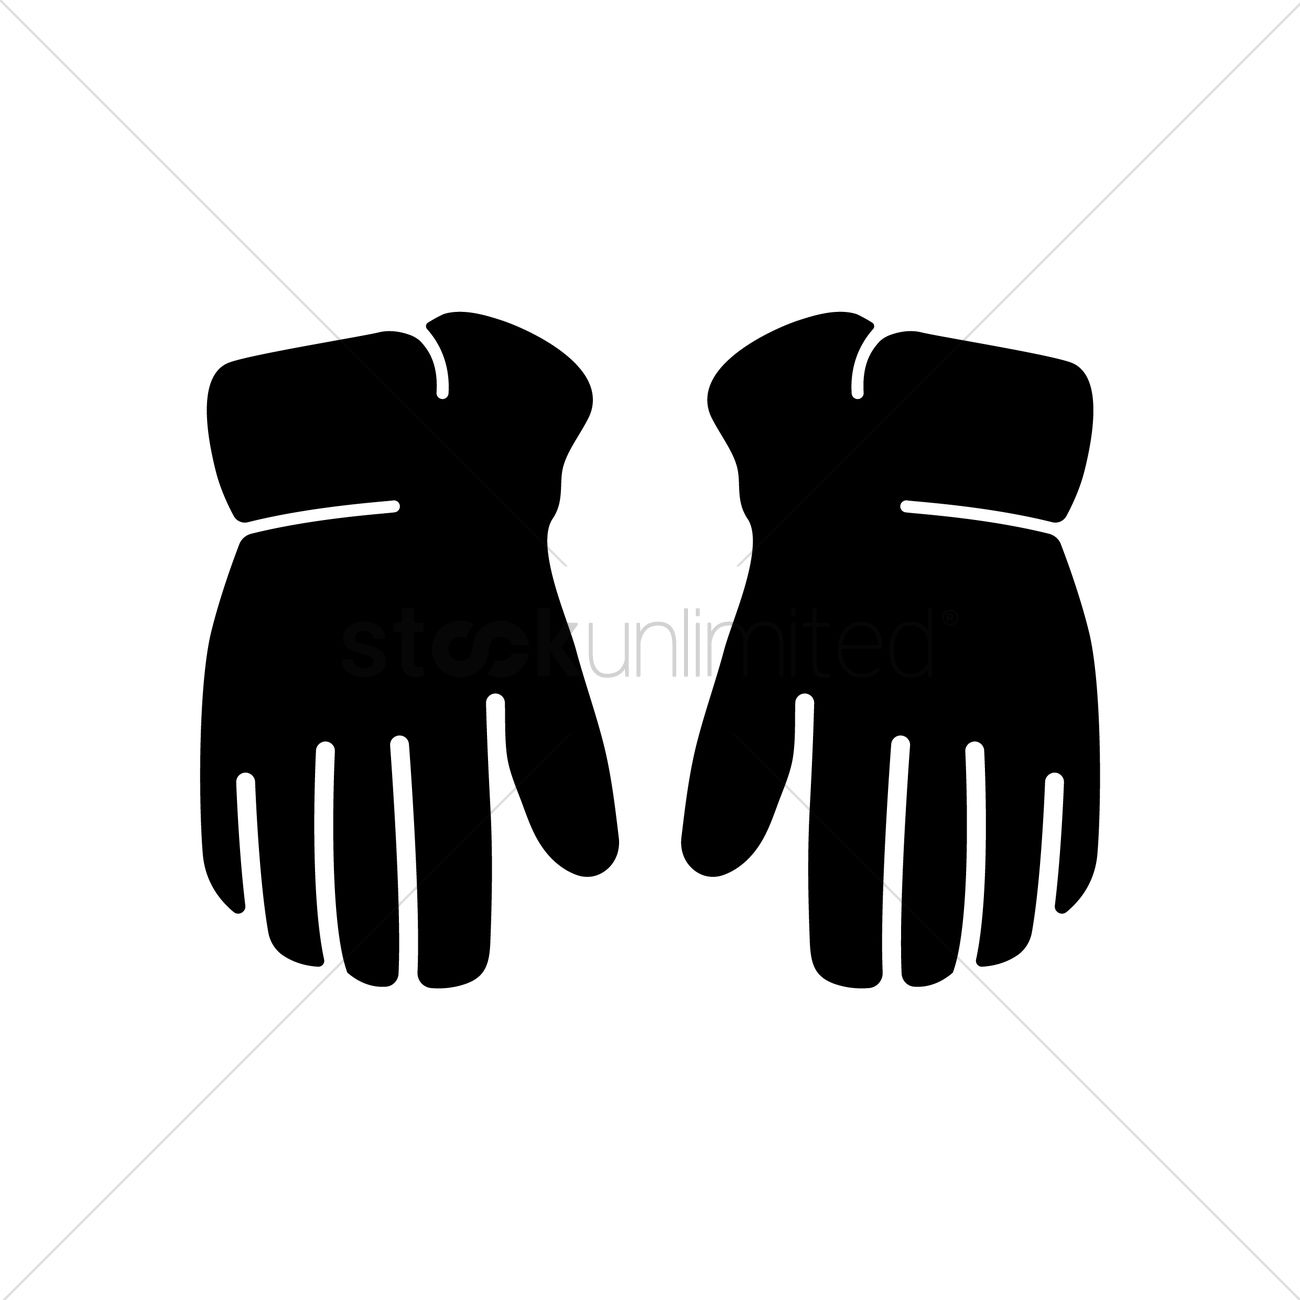 hockey gloves vector image 1988014 stockunlimited